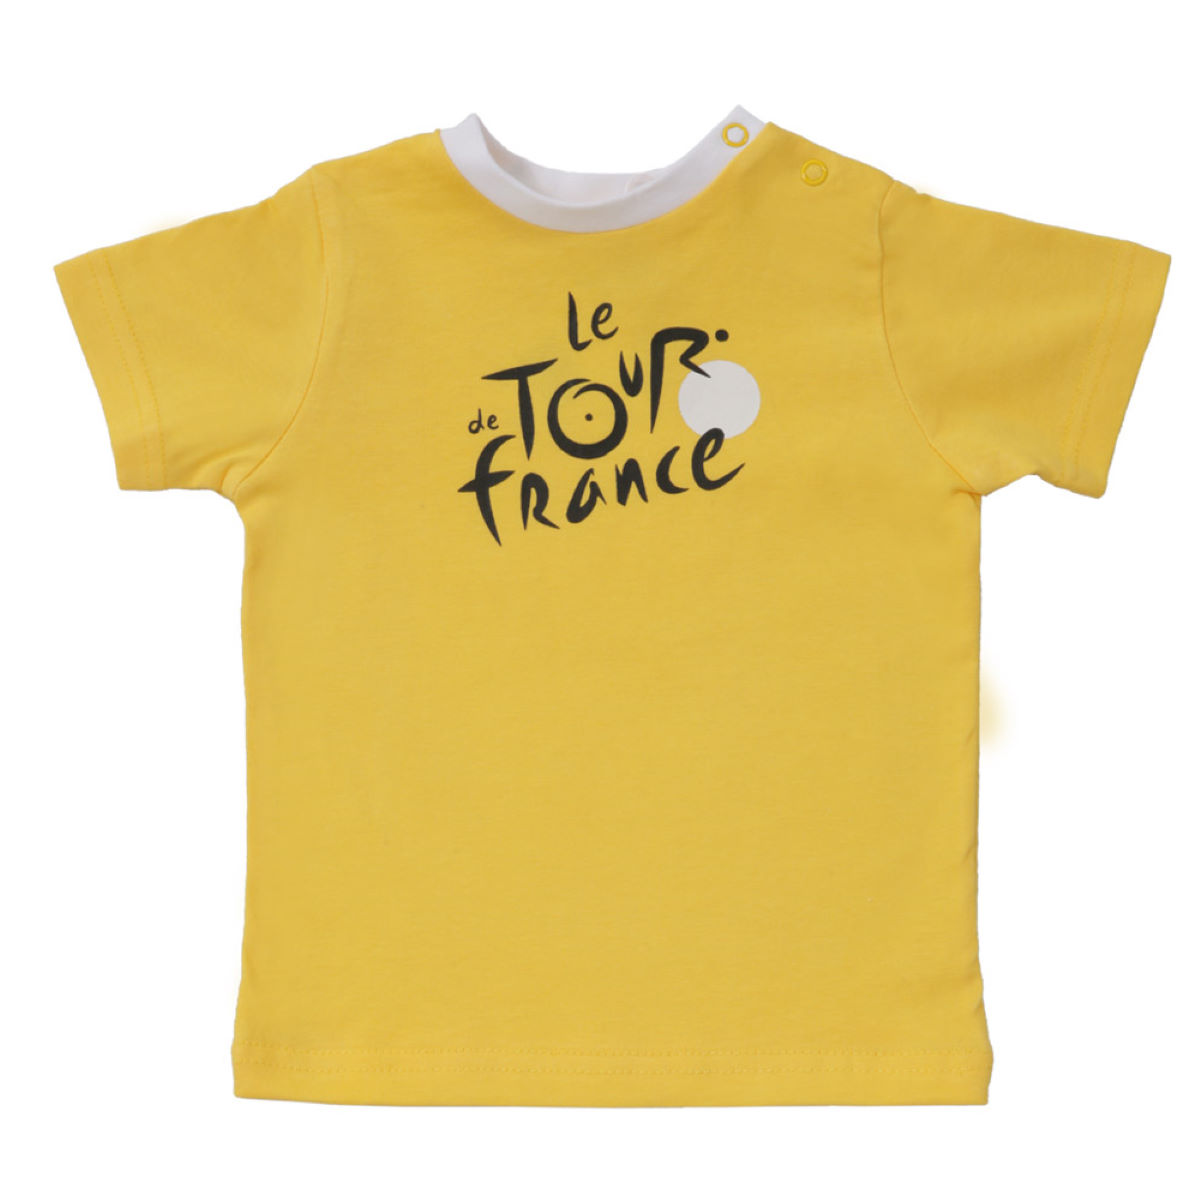 Camiseta Tour de France para bebé - Regalos